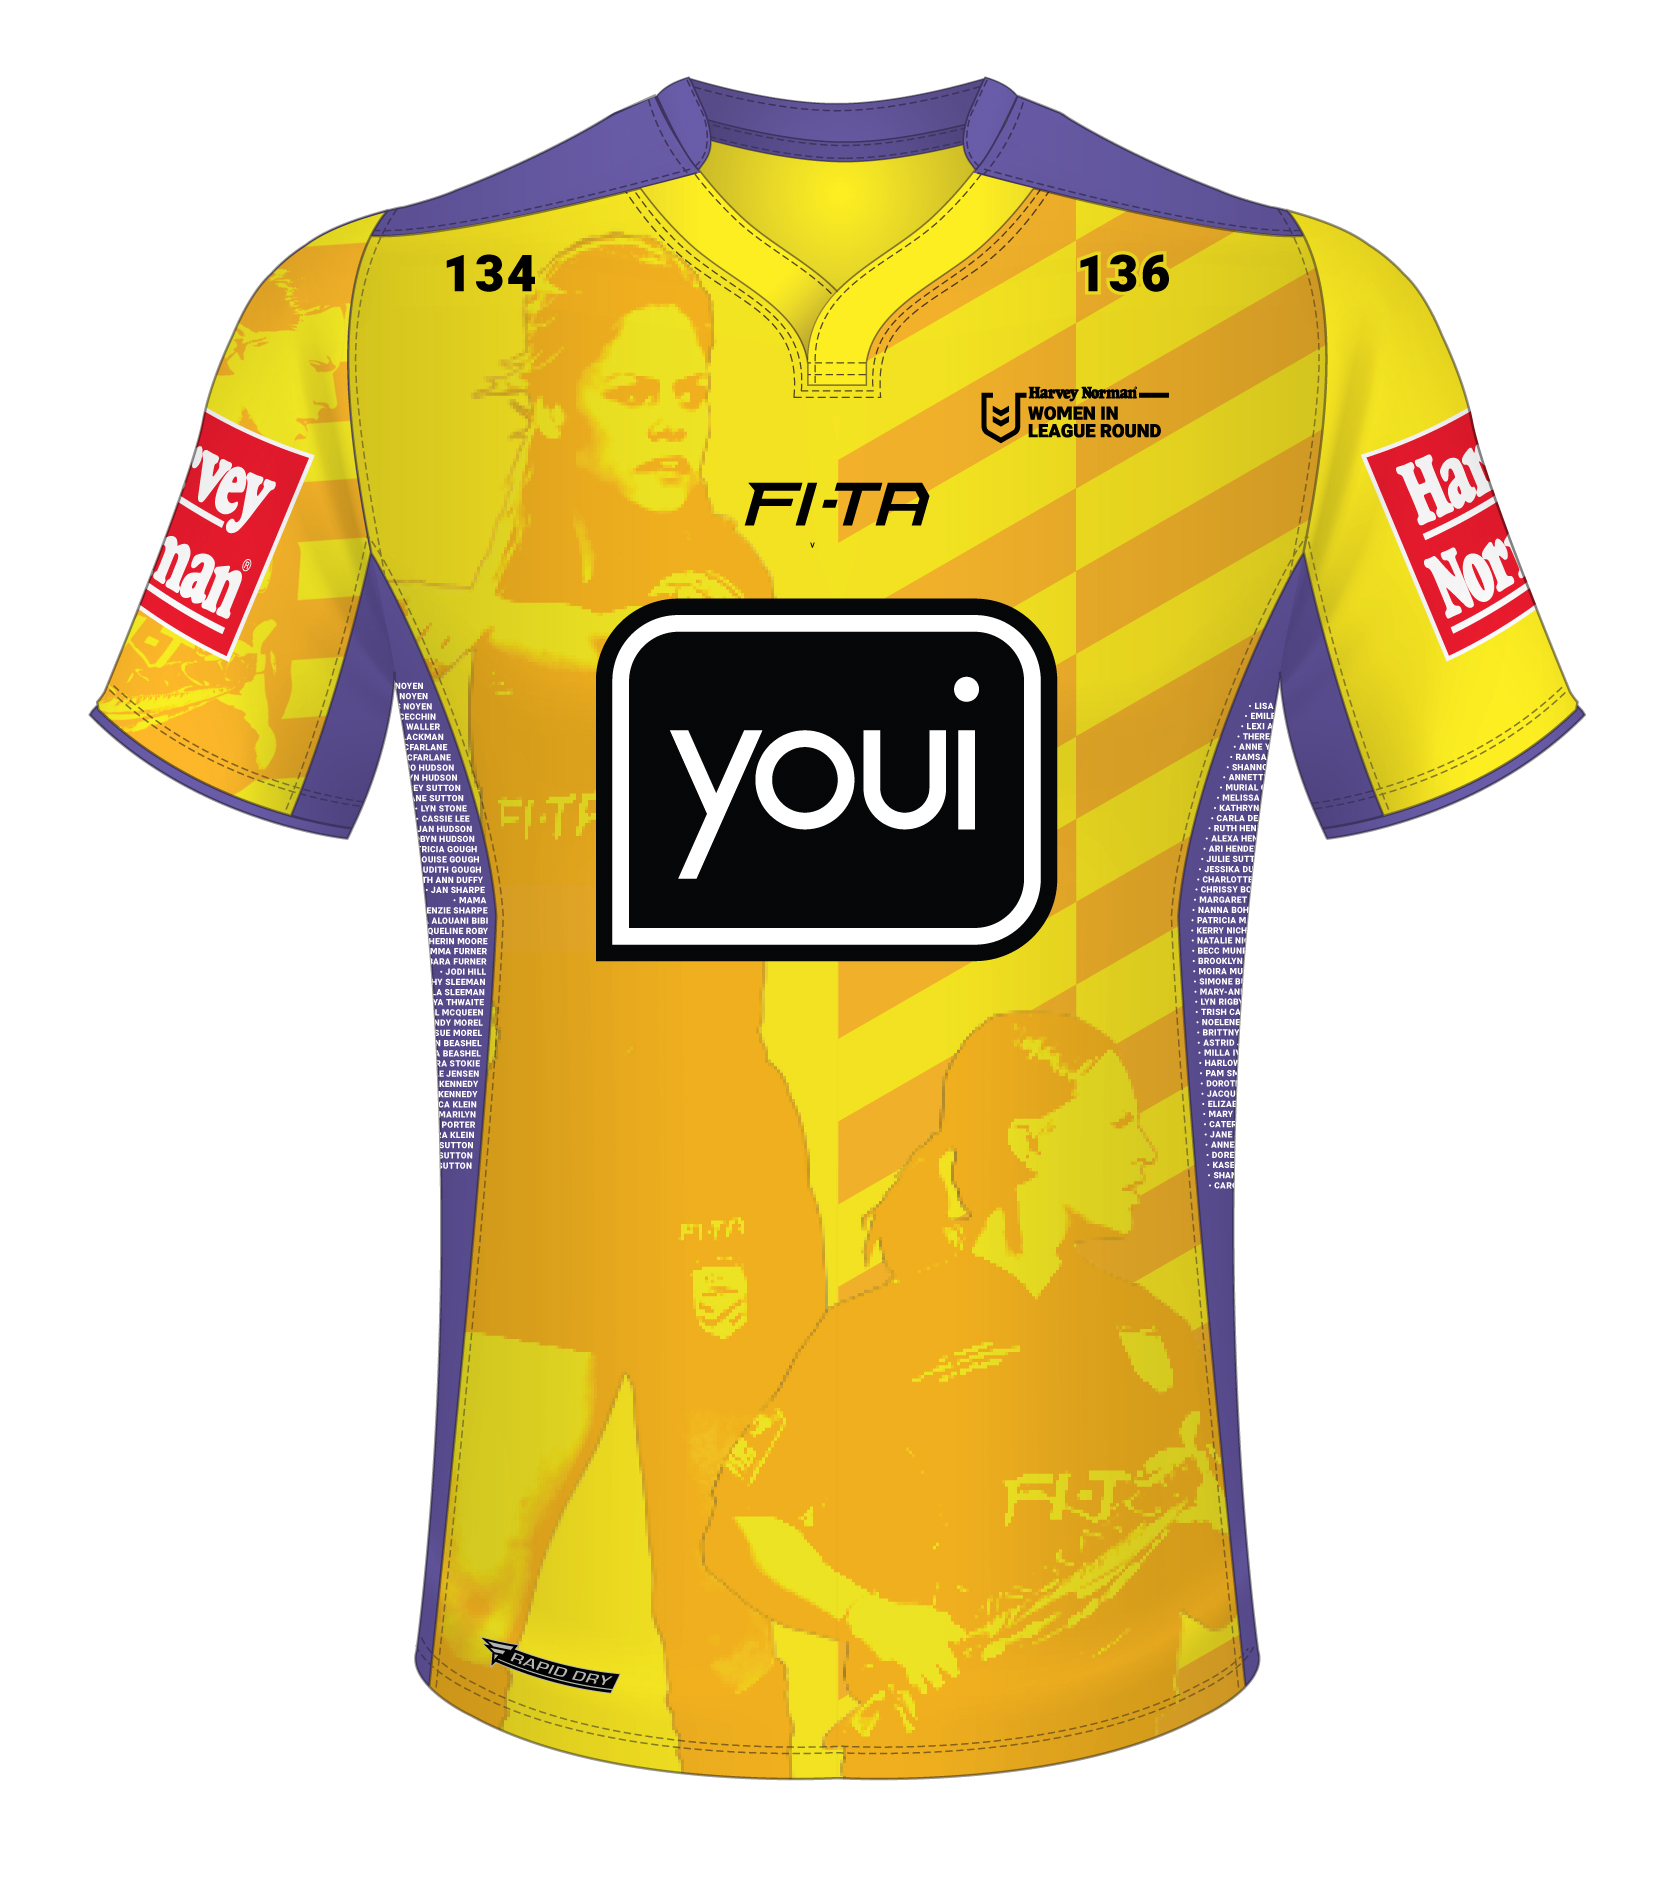 NRL Women In League Referee Shirt - Yellow